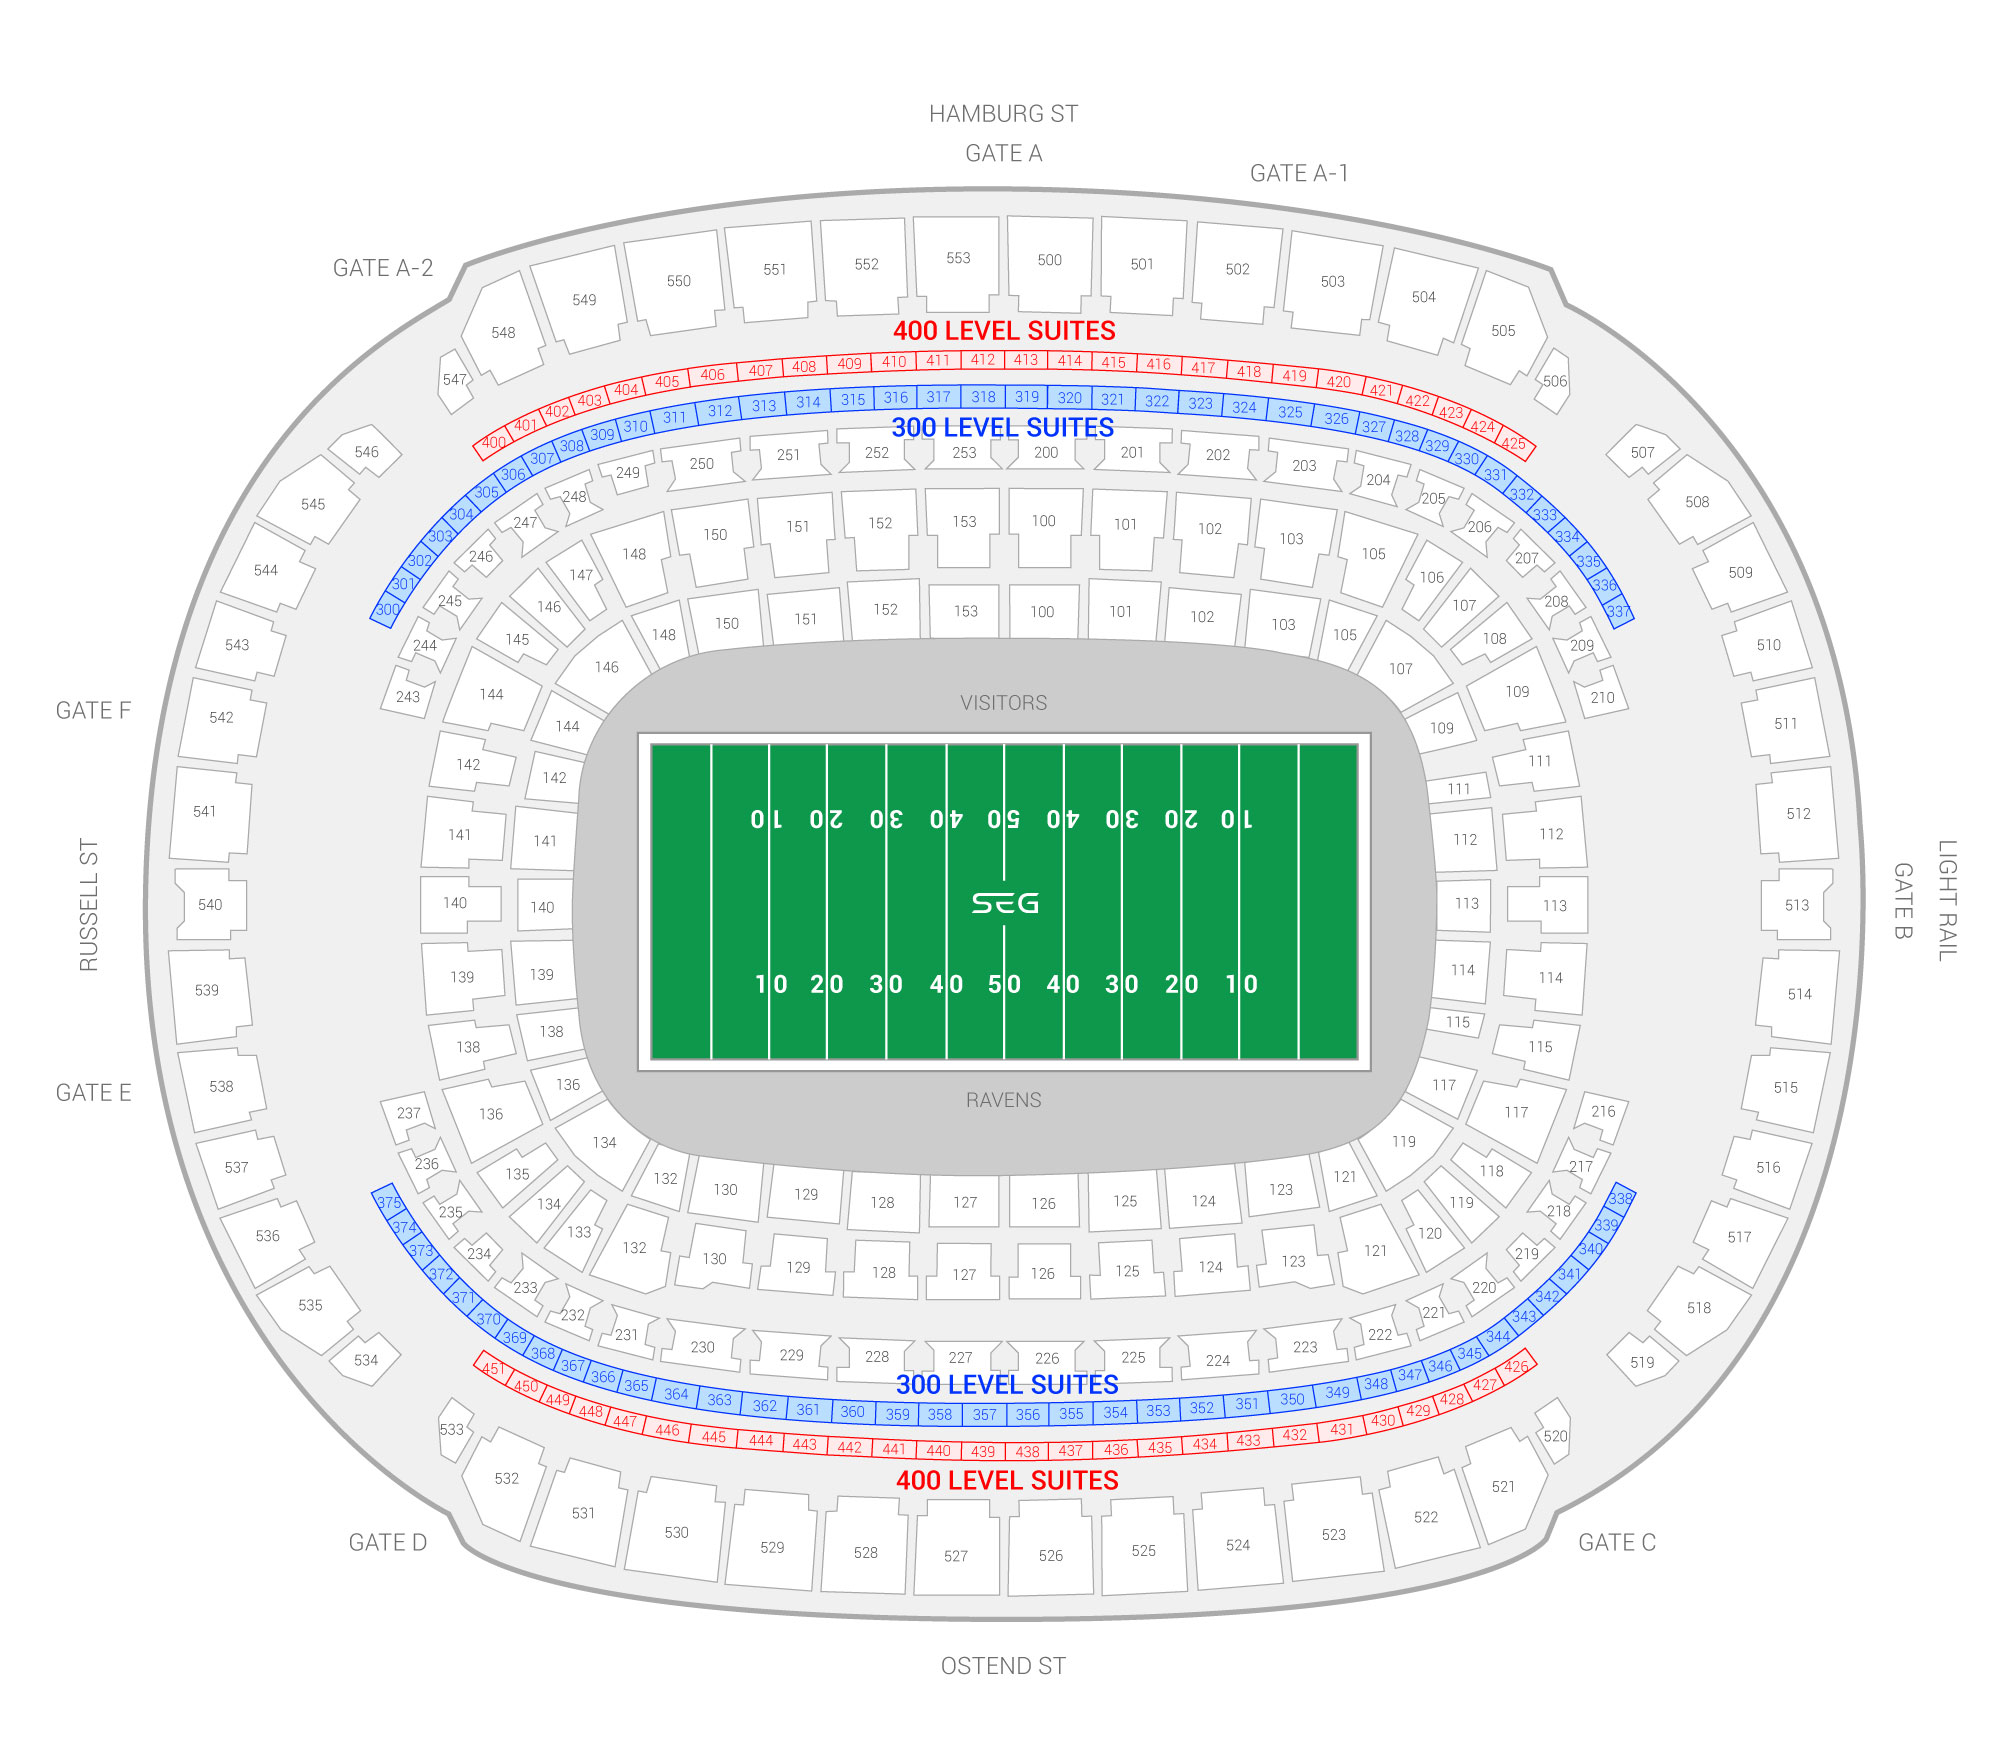 M&T Bank Stadium / Baltimore Ravens Suite Map and Seating Chart